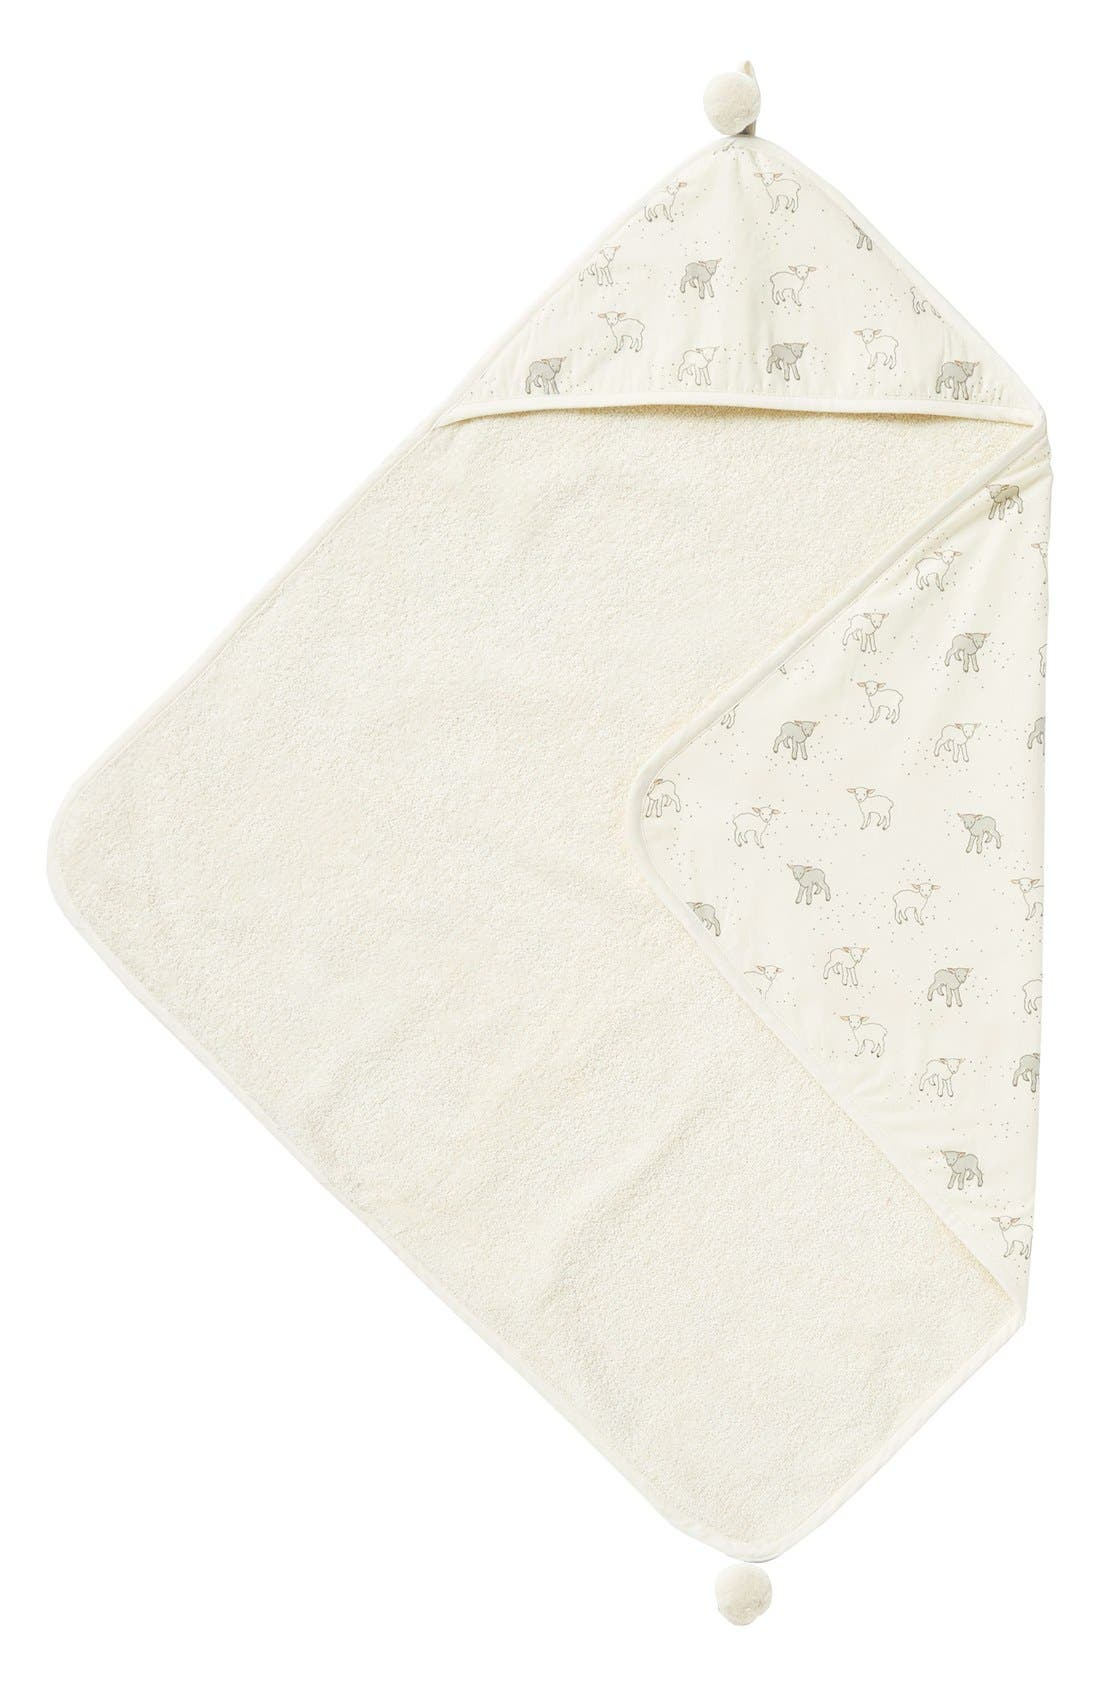 Little Lamb Print Hooded Towel,                         Main,                         color, CREAM